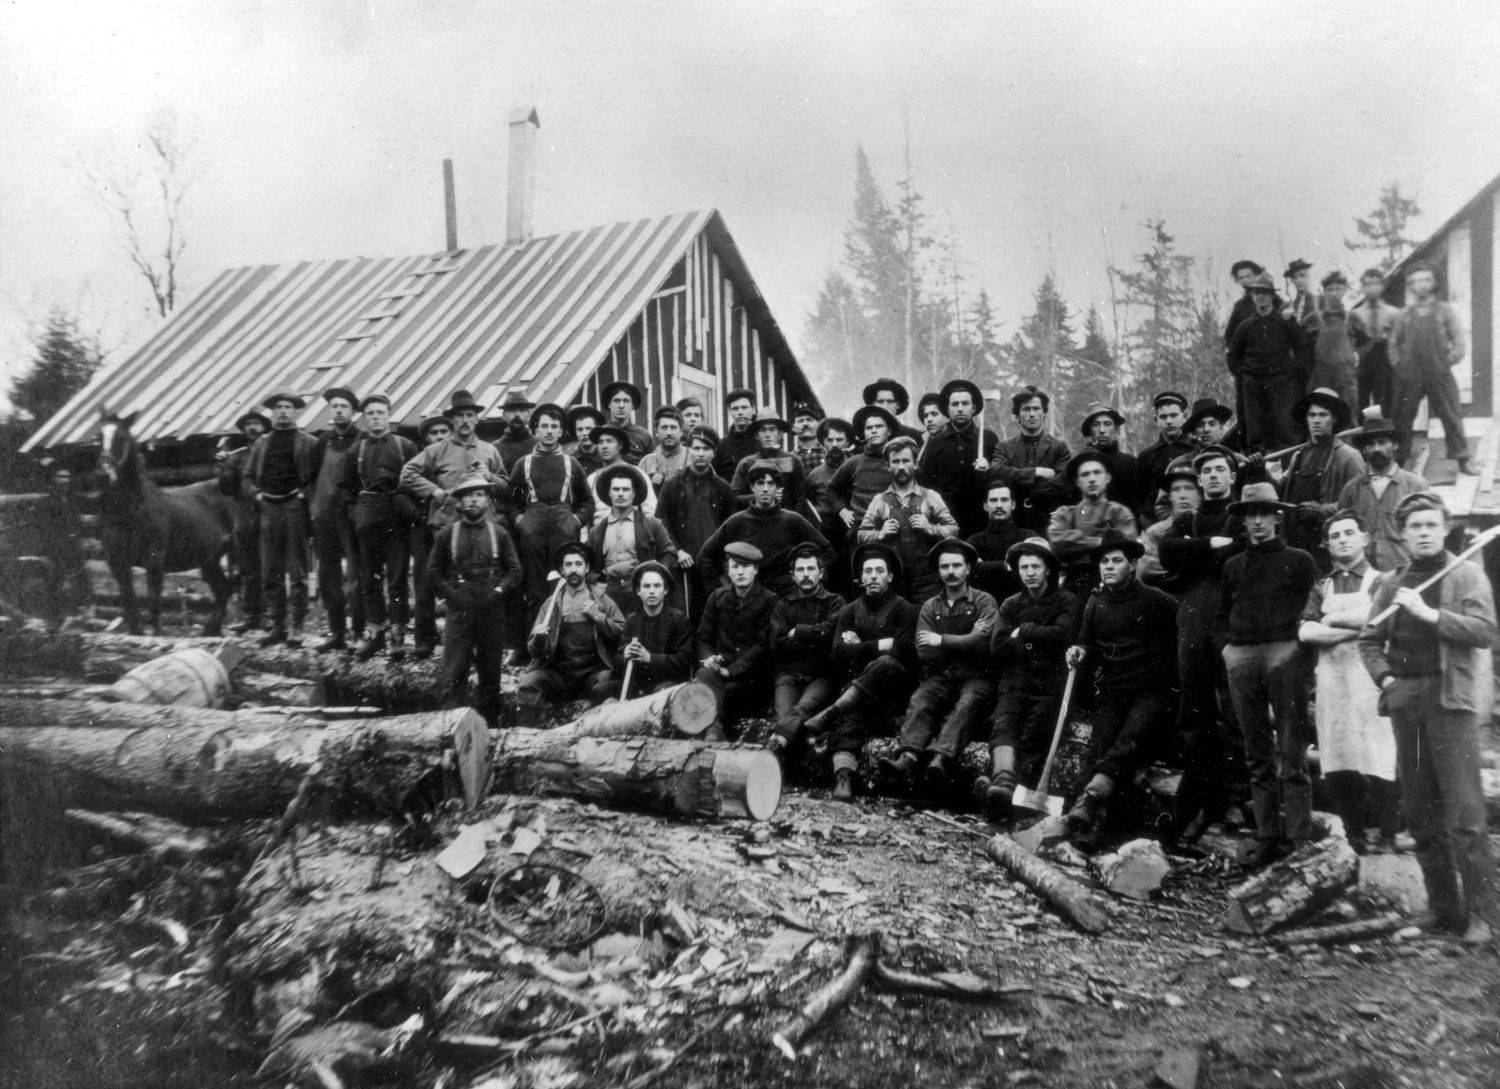 LS08691_000-Logging Camp.jpg